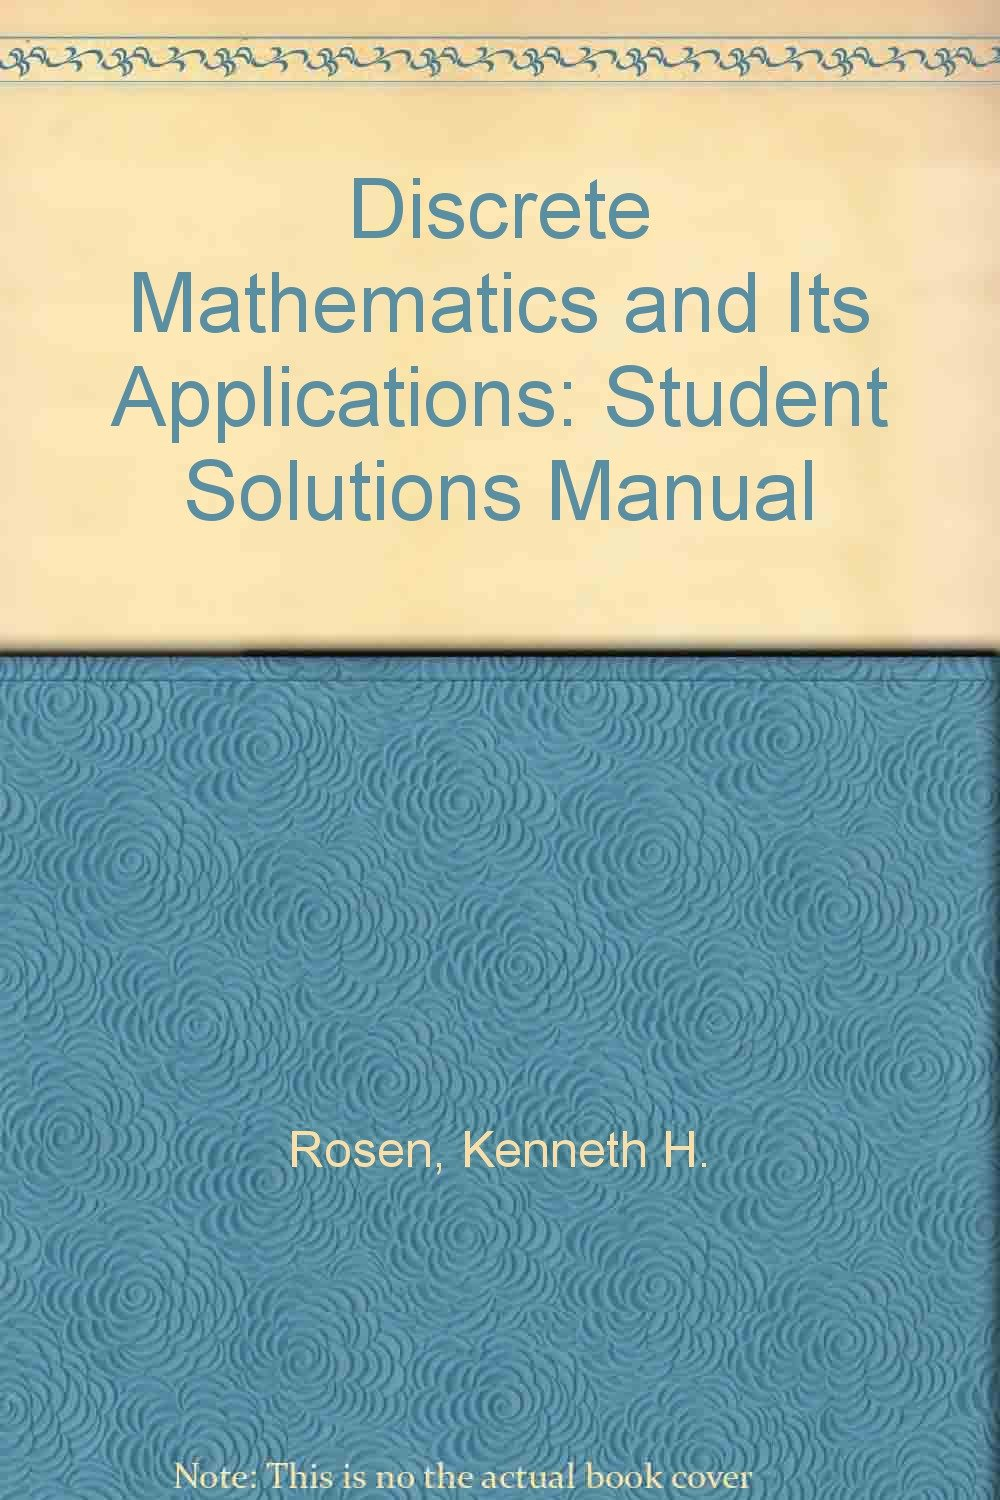 Discrete Mathematics and Its Applications: Student Solutions Manual:  Kenneth H. Rosen: 9780075539582: Amazon.com: Books